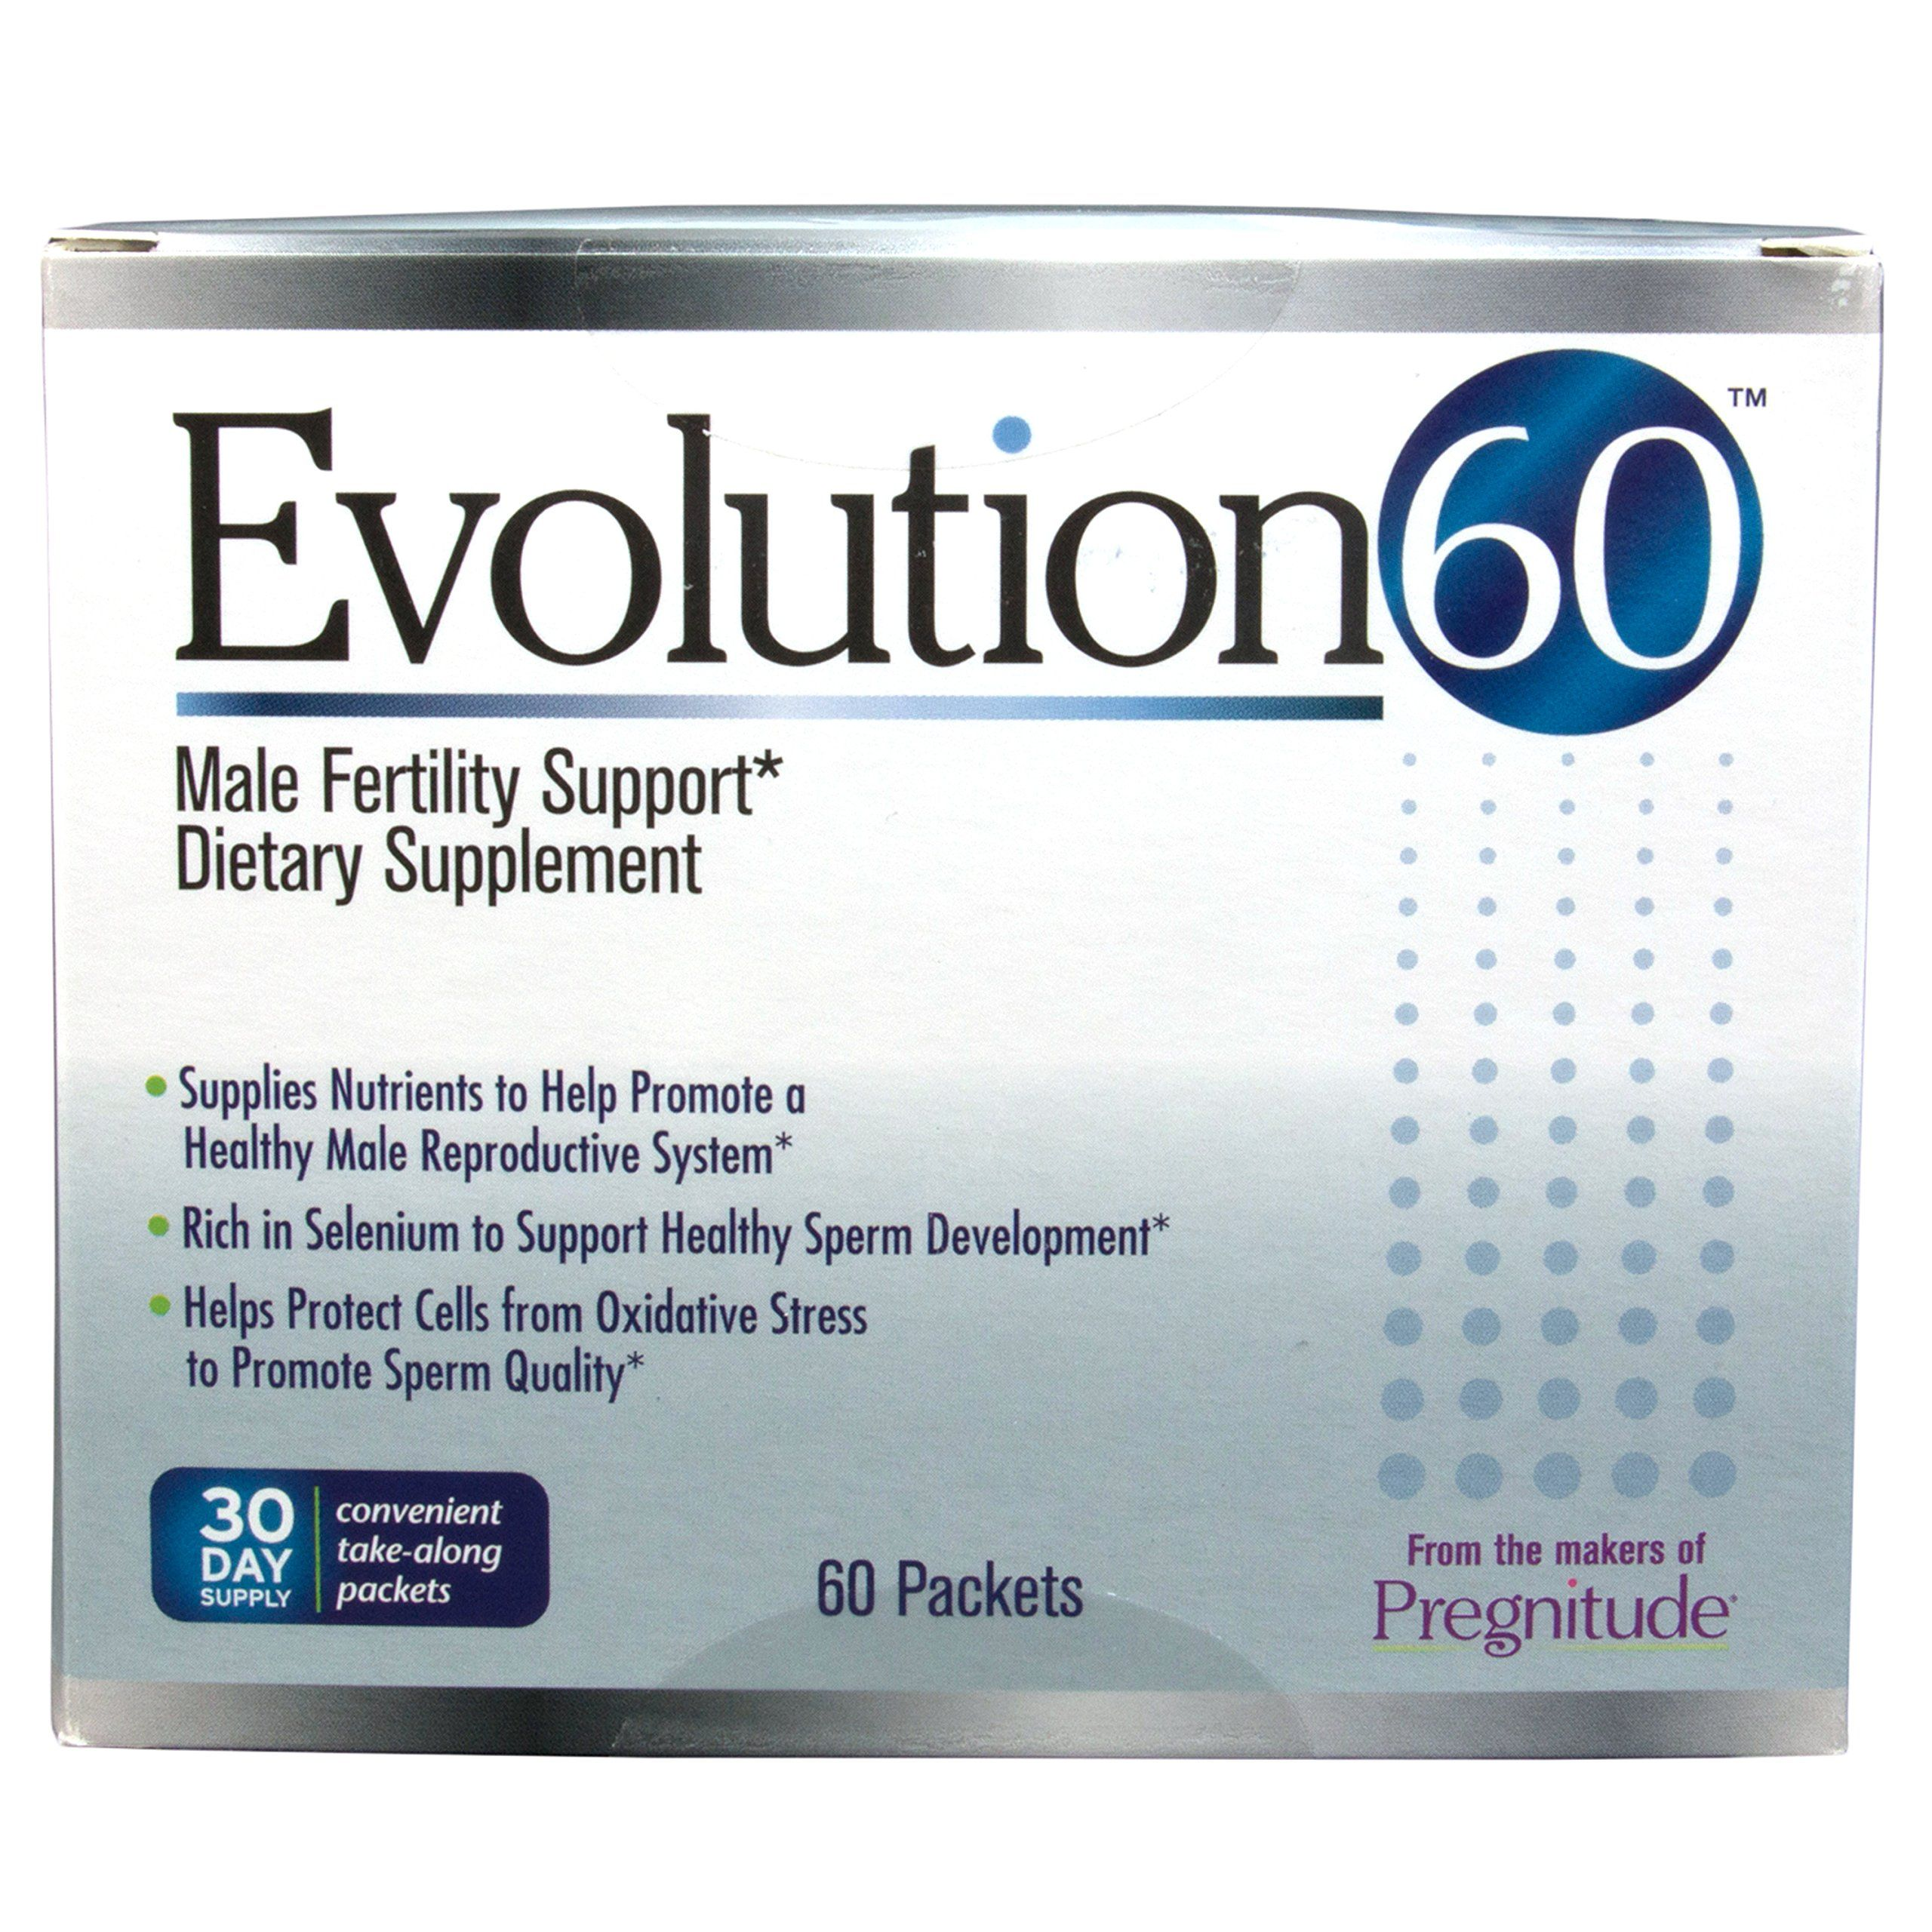 Fertility Pills Evolution60 Male Fertility And Reproductive Supplement 60 Support Packets You Could F Male Fertility Fertility Pills Getting Pregnant Tips